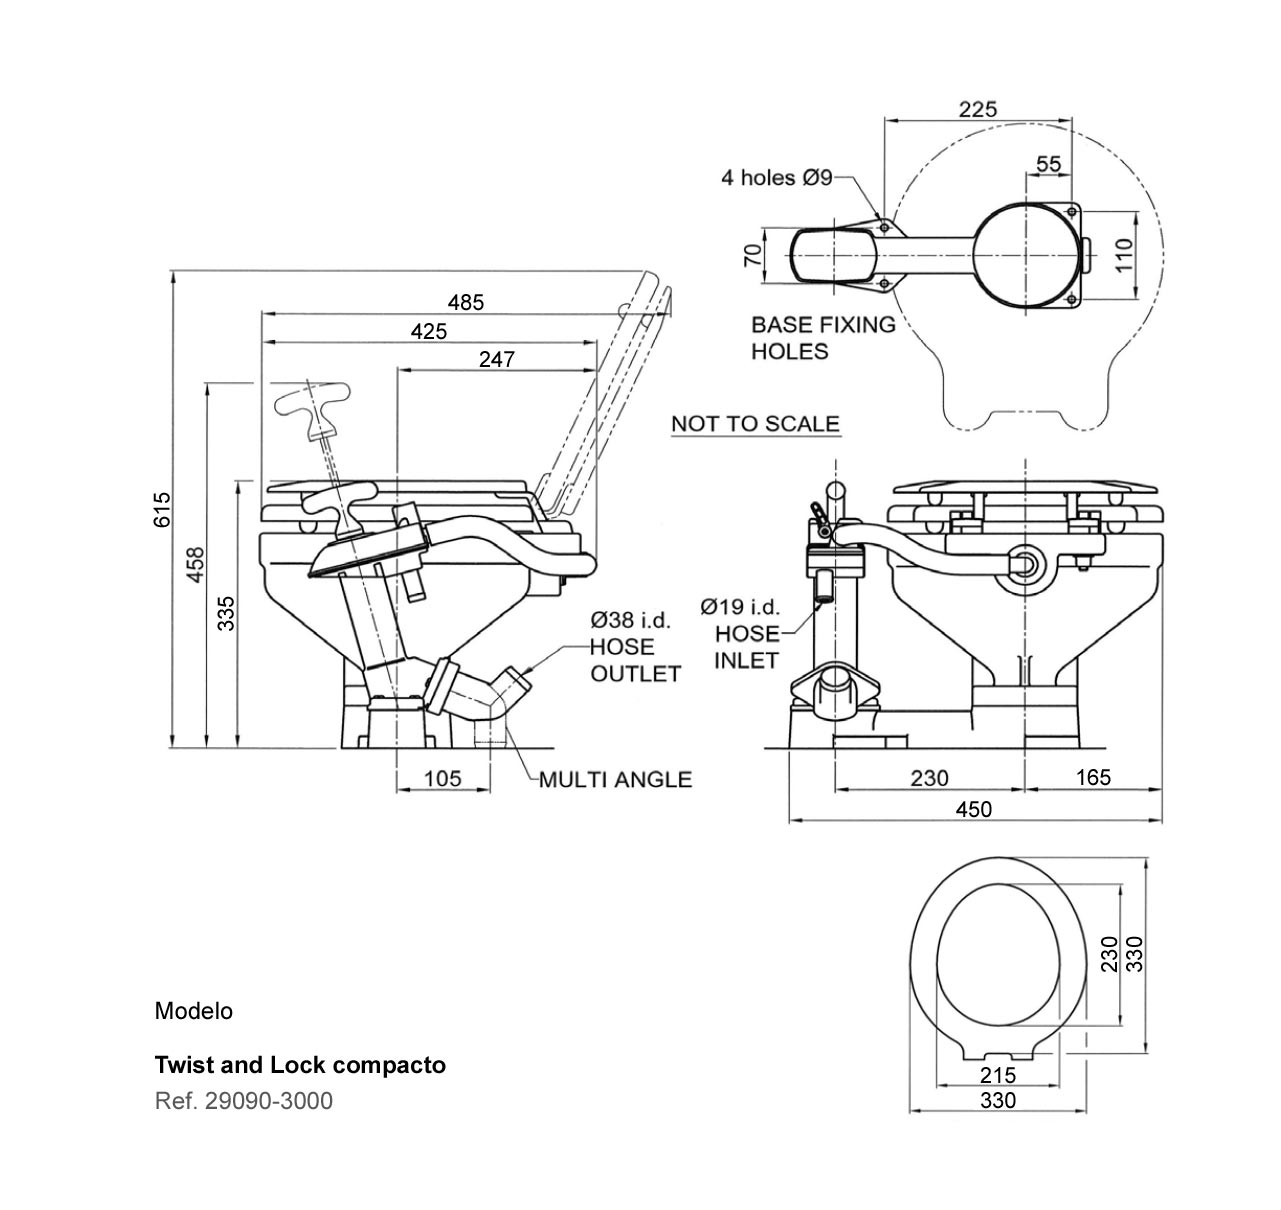 Hayward 15 Hp Pool Pump Above Ground Pool Pump Home Design App Cheats additionally Plumbing Trap Repairs additionally TM 10 4320 309 14 165 likewise Flandwatypid also 85263 Packaged Sewage And Sump Pump Systems. on self priming